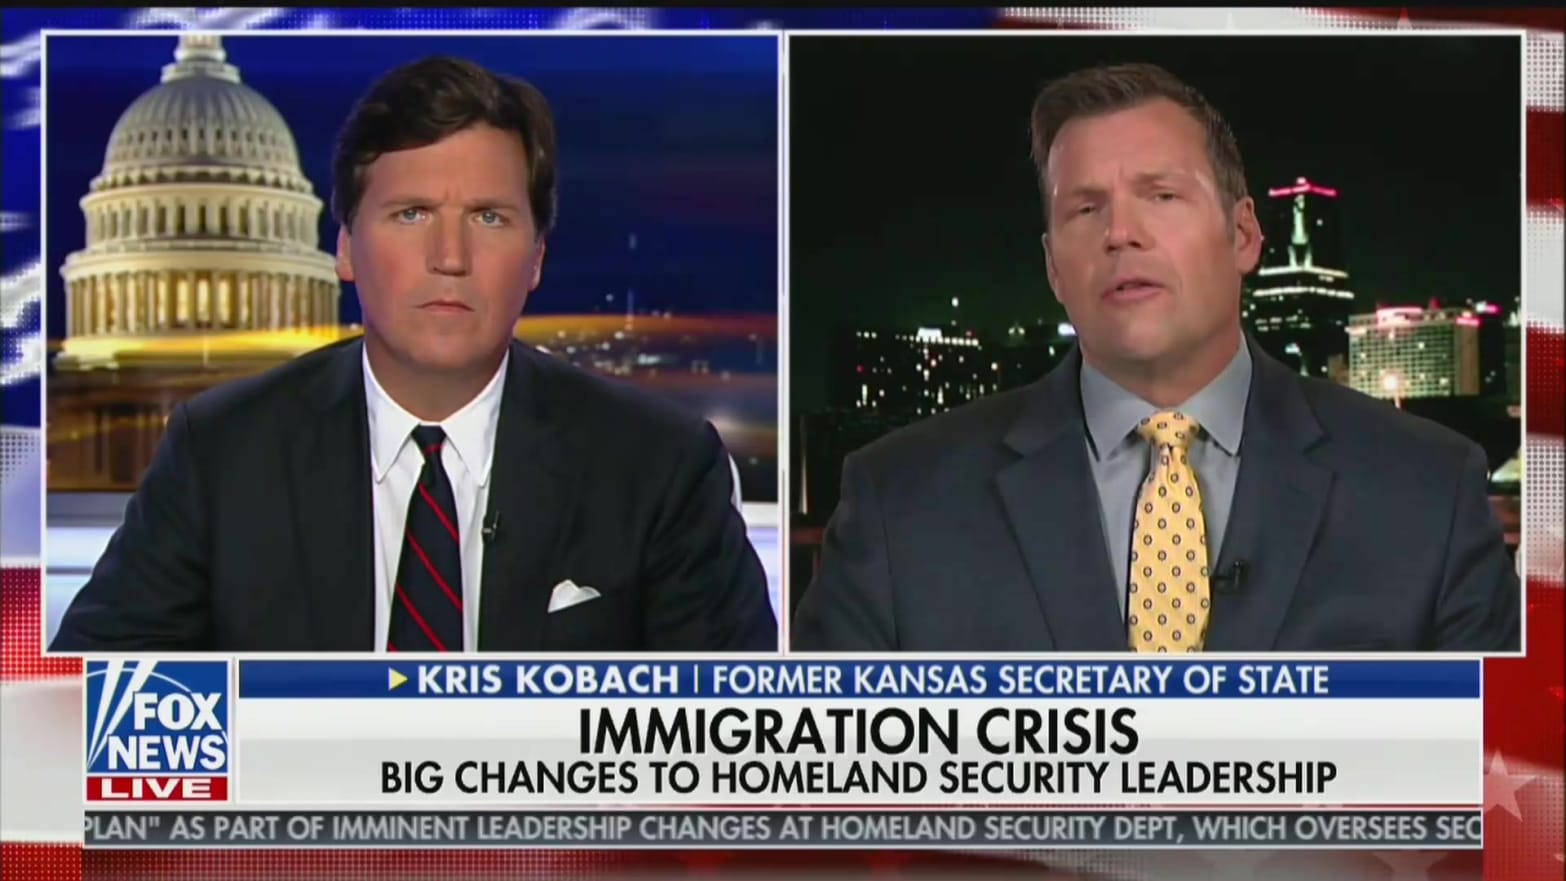 Kris Kobach Auditions for DHS Job on Fox: Detain Children 'As Long As Necessary'